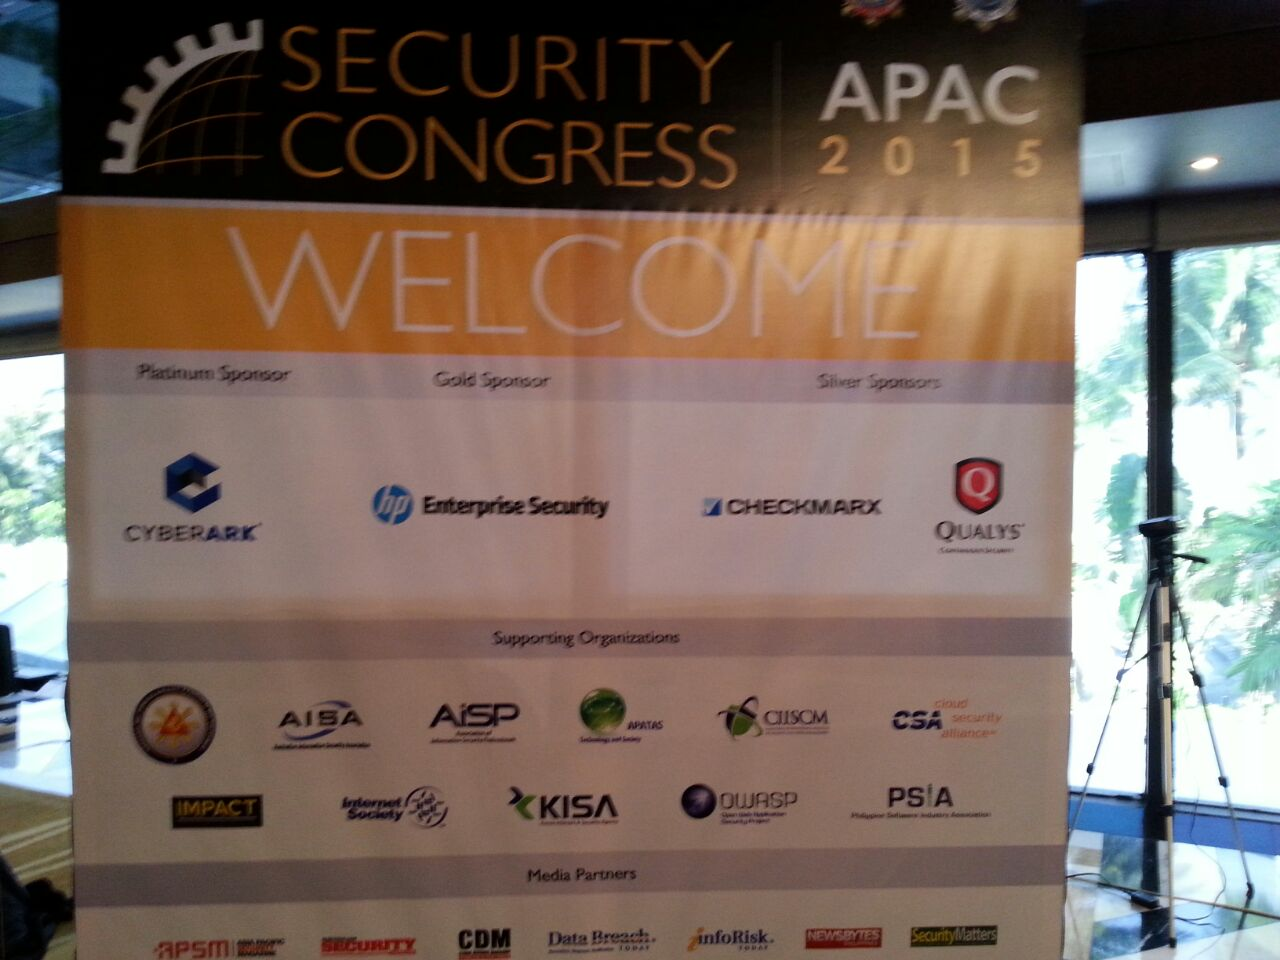 APAC 2015 Security Congress opens today!